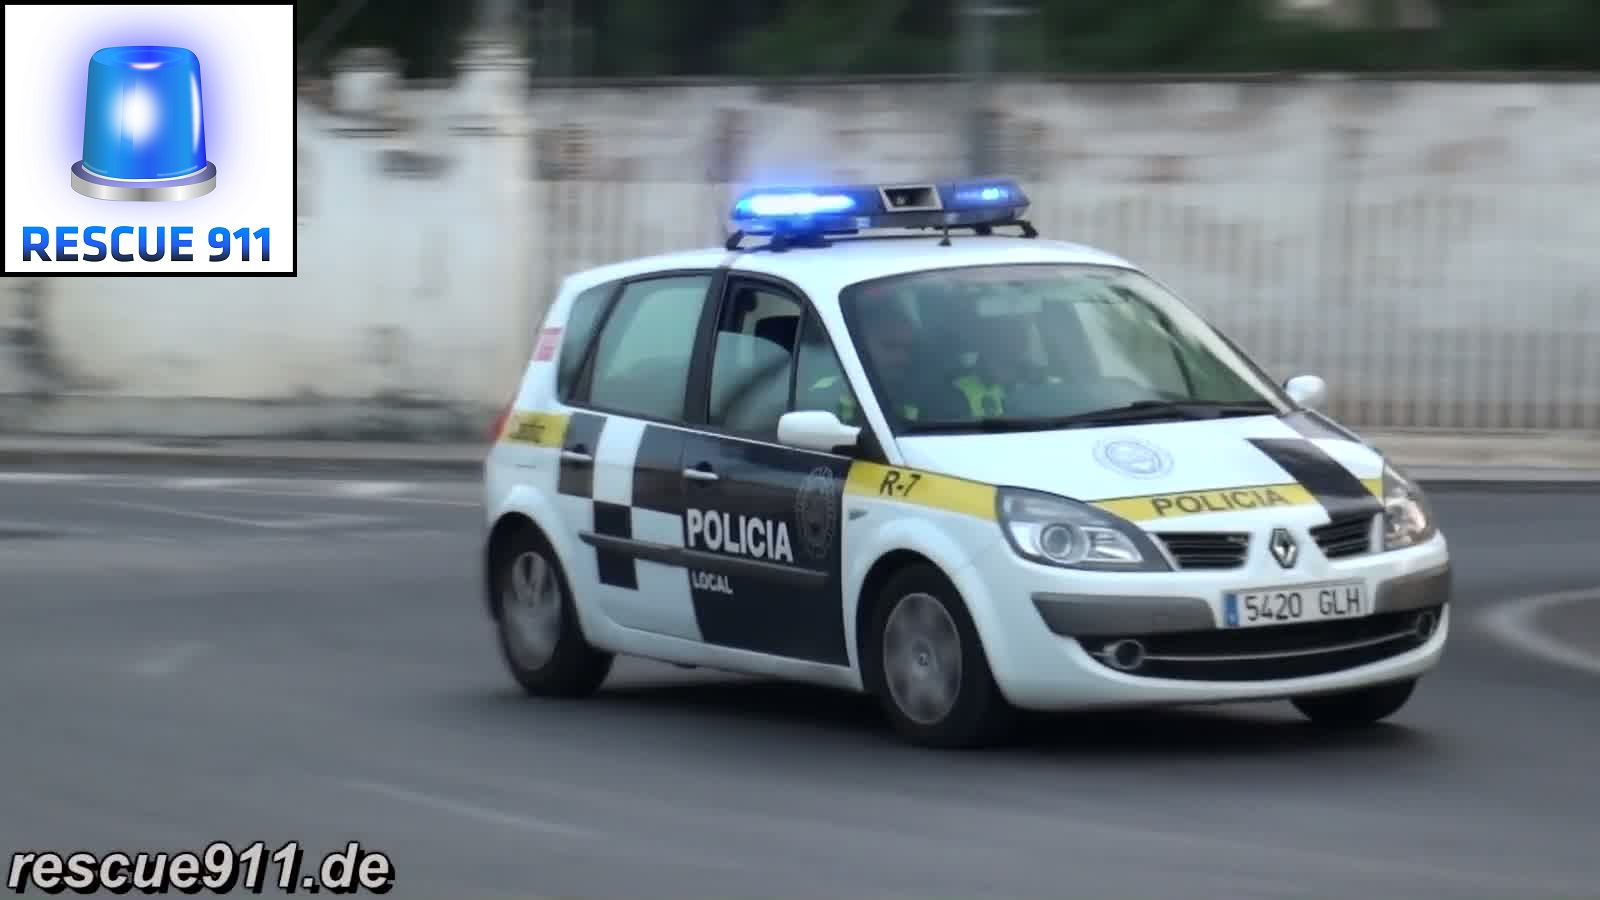 Policía + Ambulancía Cádiz (collection) (stream)